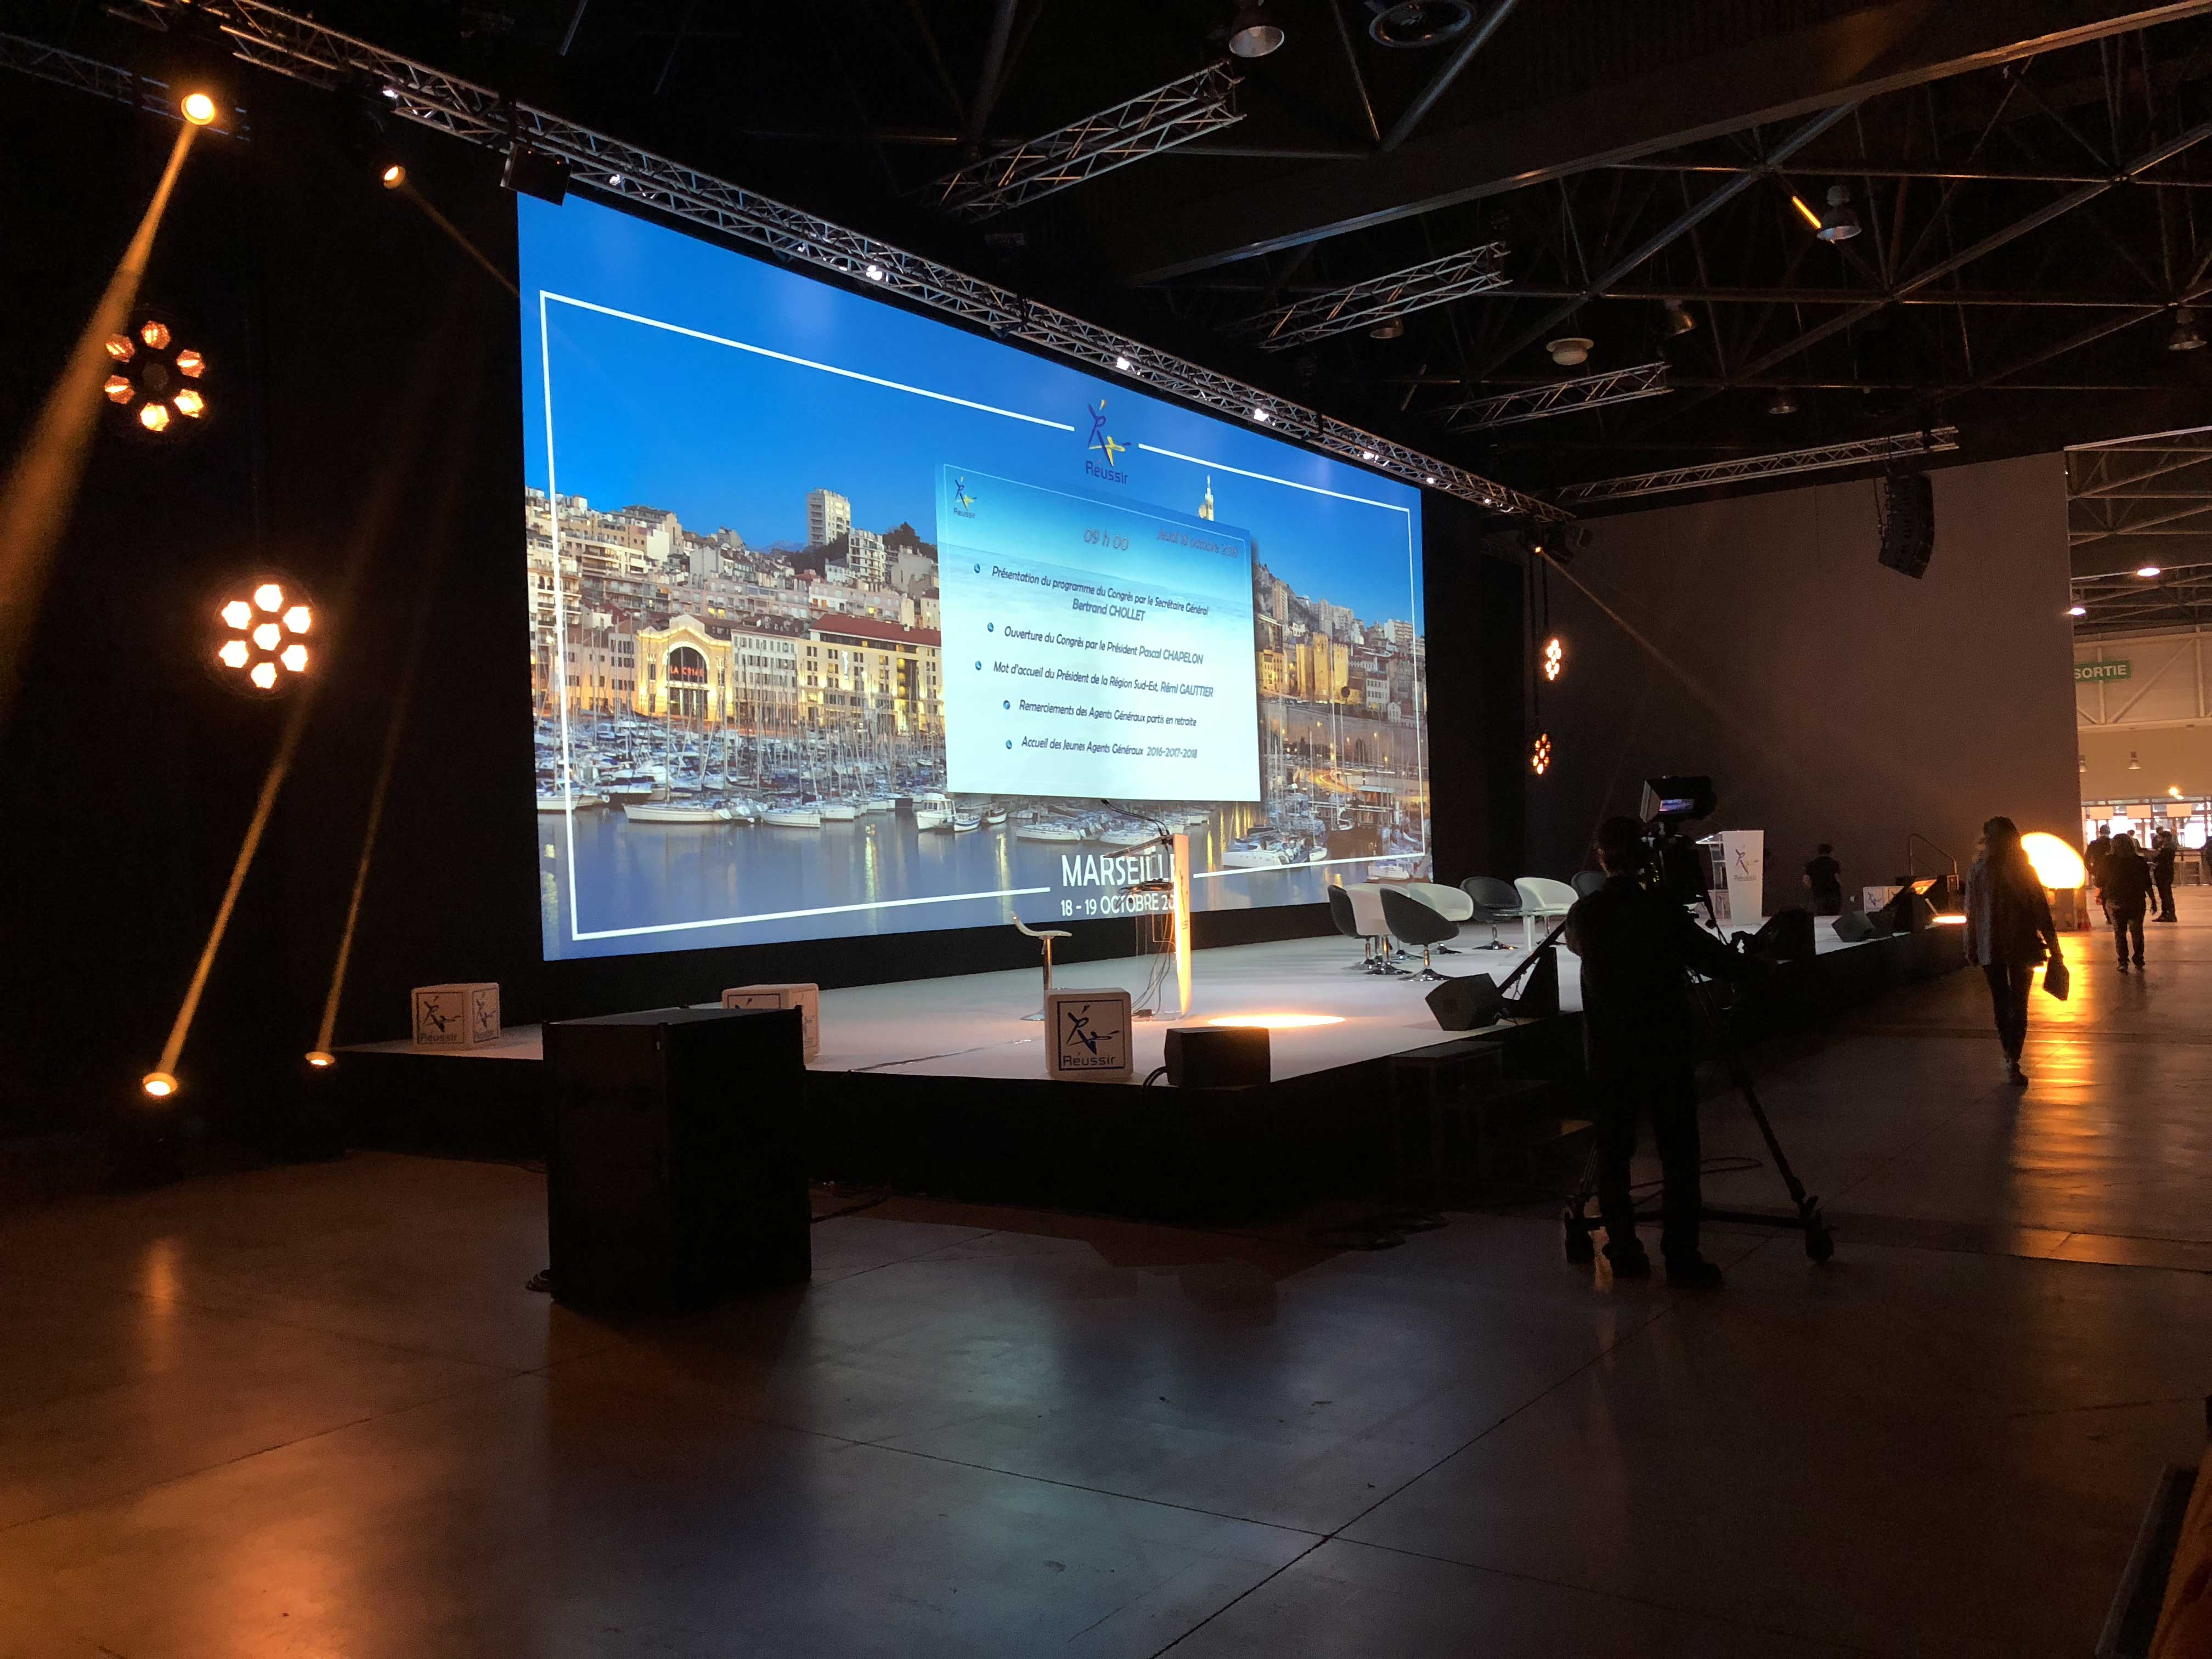 AXA-30-ANS-ECLAIRAGE-SONORISATION-VIDEO-DECORATION-MOBILIER-SCENIQUE-STRUCTURE-SCENE-TRADUCTION-SIMULTANEE-AUDIO-VISIO-CONFERENCE-AXA-AUCOP-NICE-MARSEILLE-PARIS